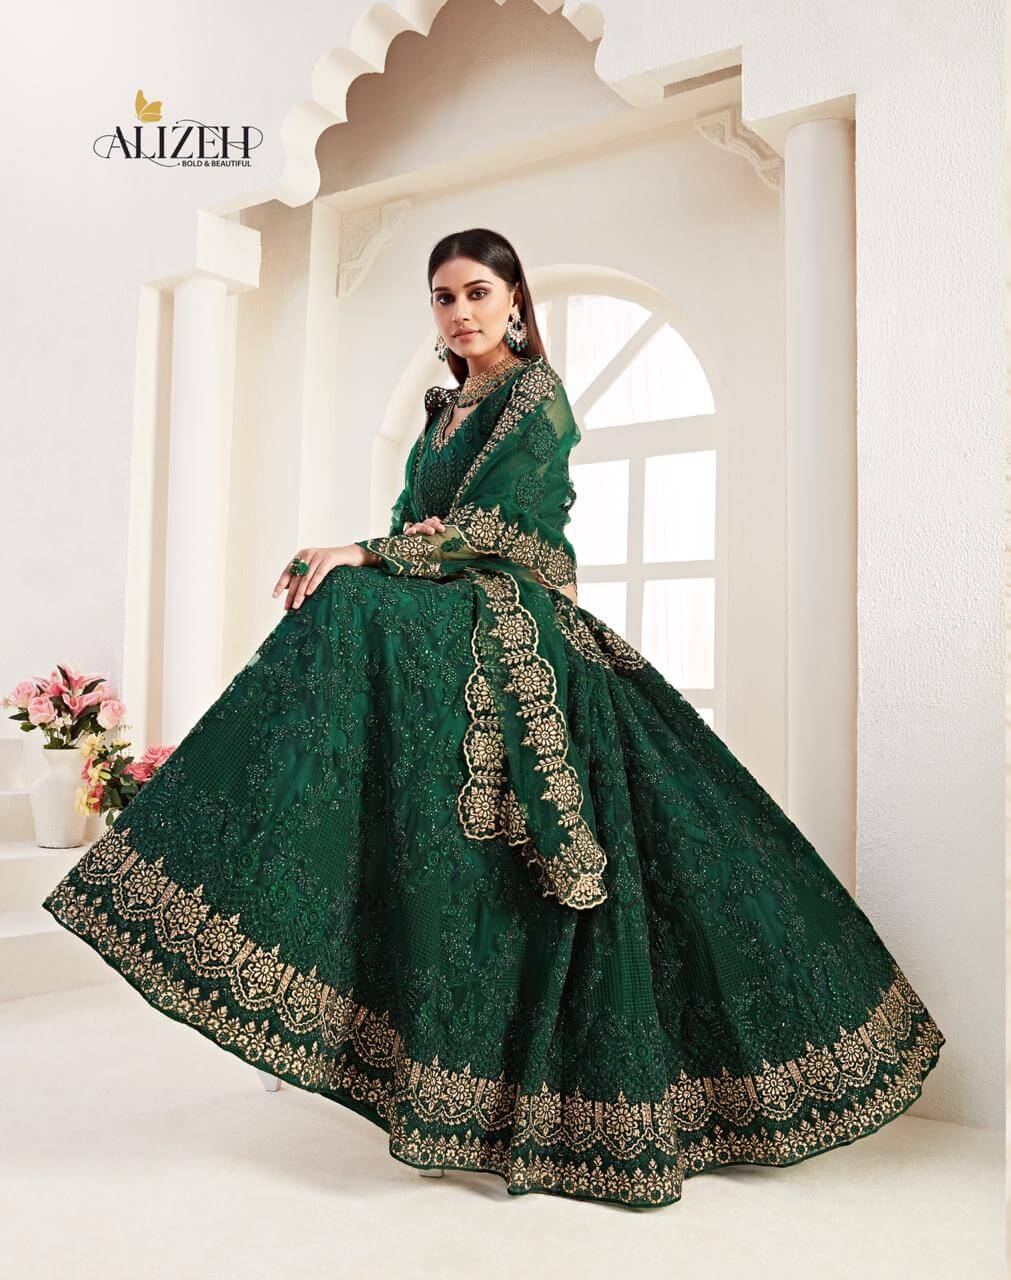 Alizeh Bridal Heritage Vol 2 collection 9